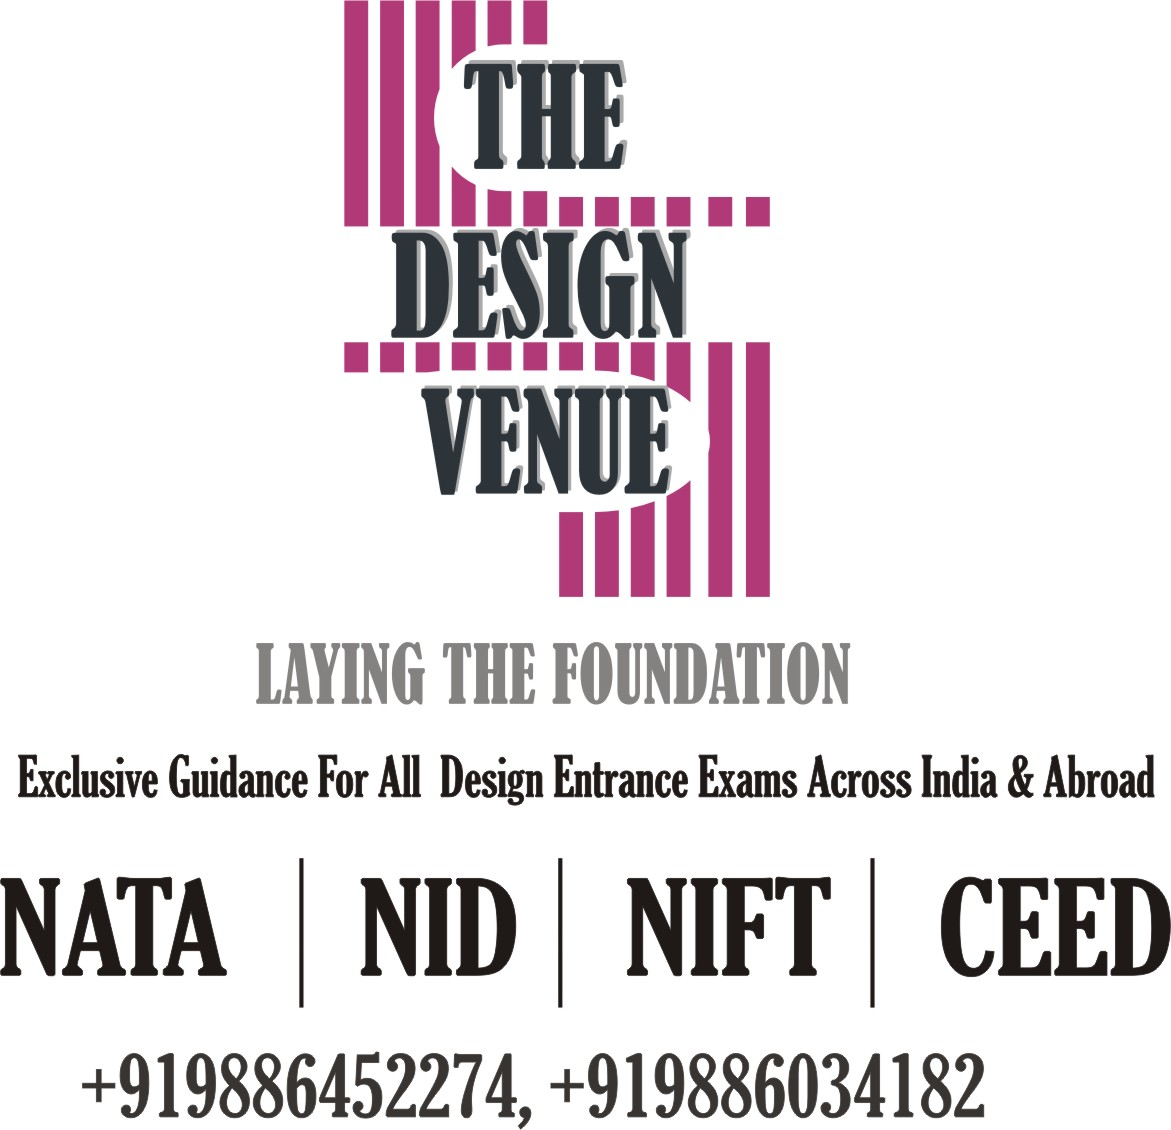 The Design Venue